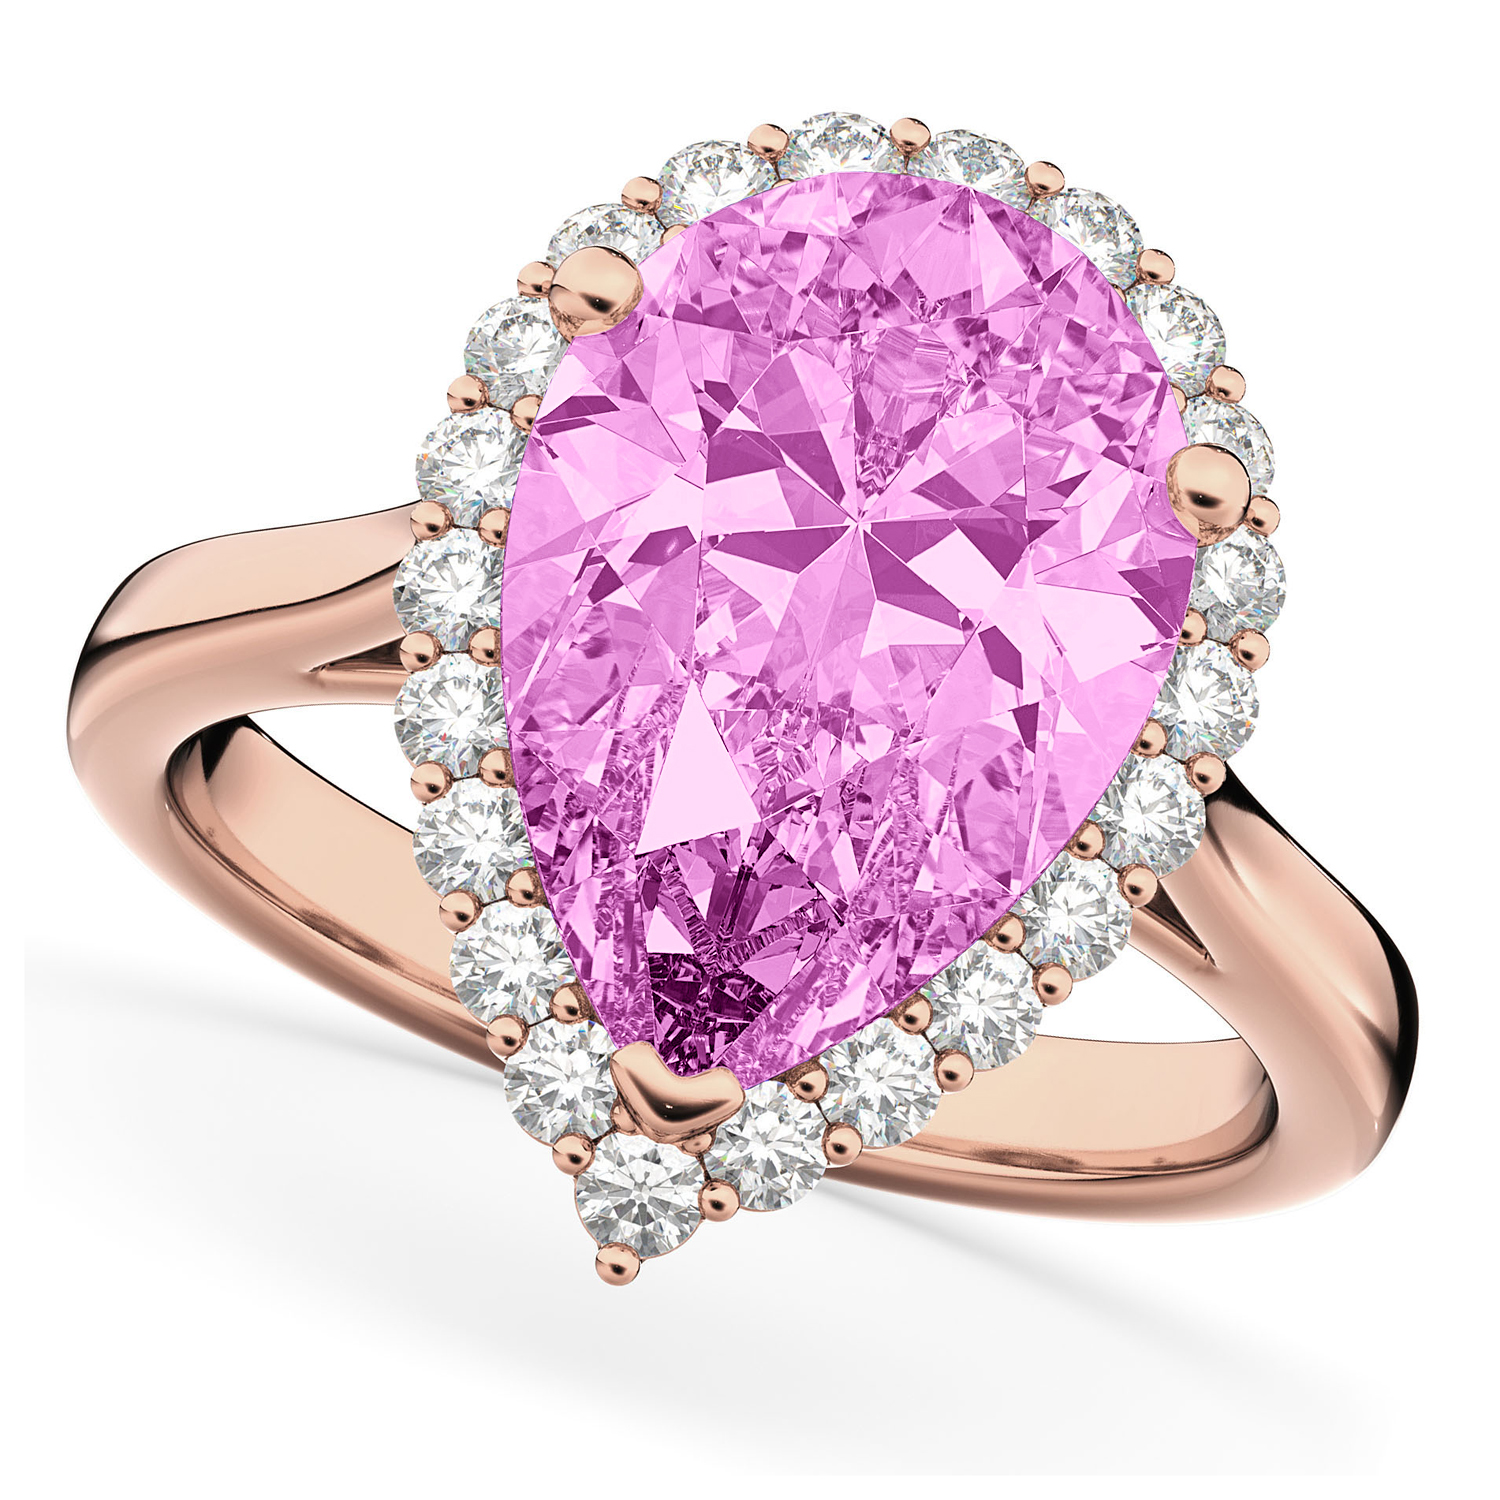 Pear Cut Halo Pink Sapphire & Diamond Engagement Ring 14K Rose Gold ...